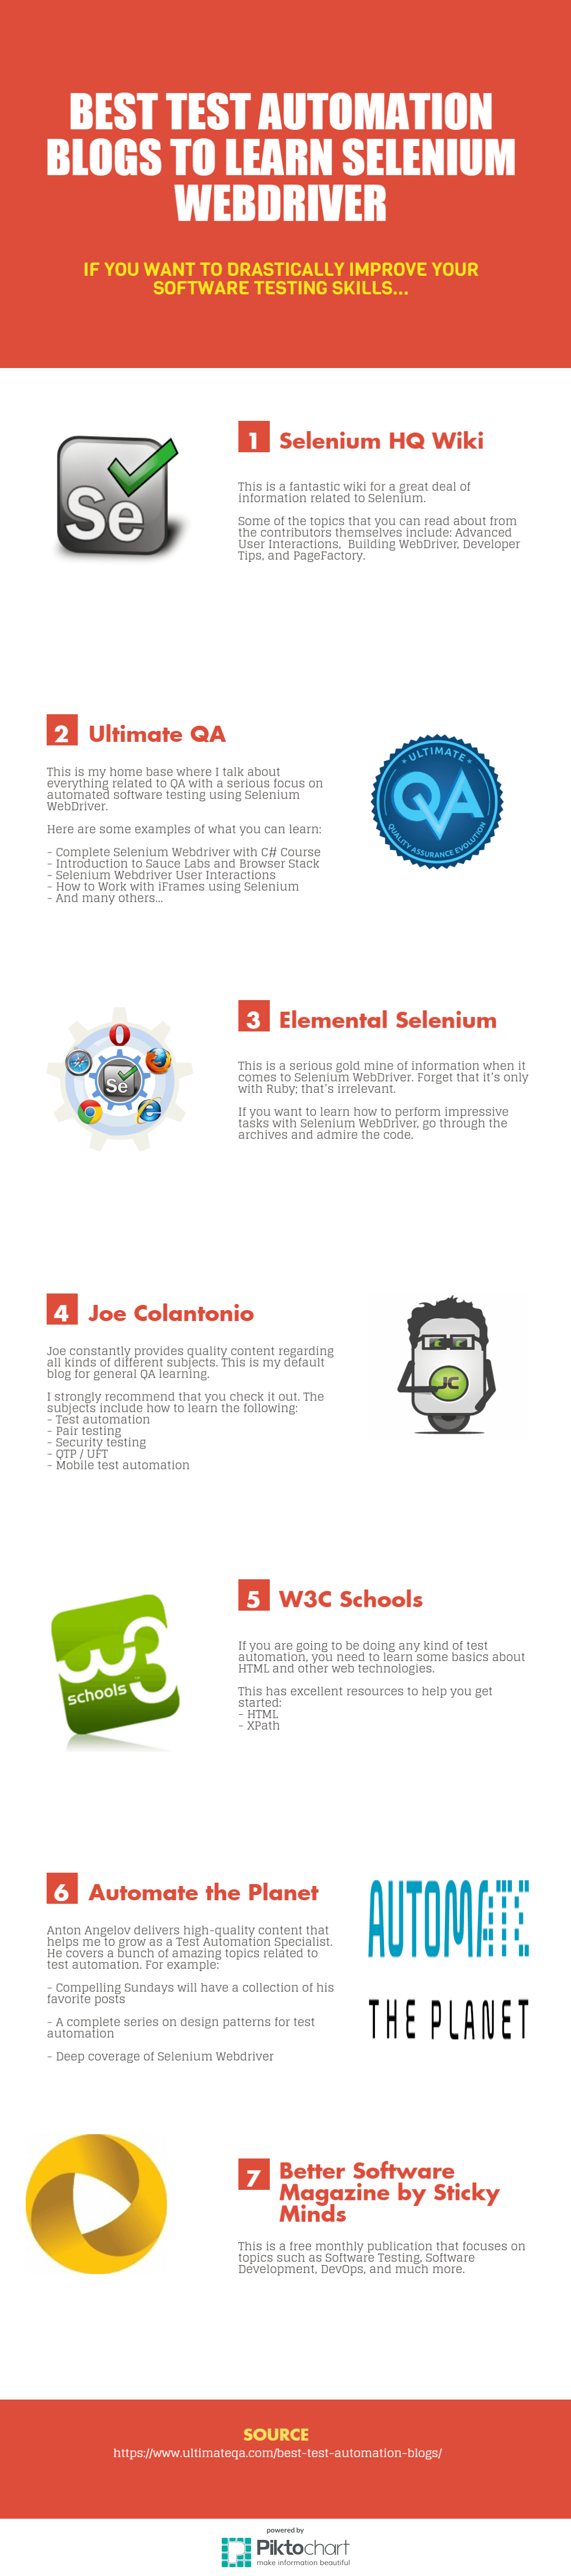 free infographic - best test automation blogs to learn selenium webdriver